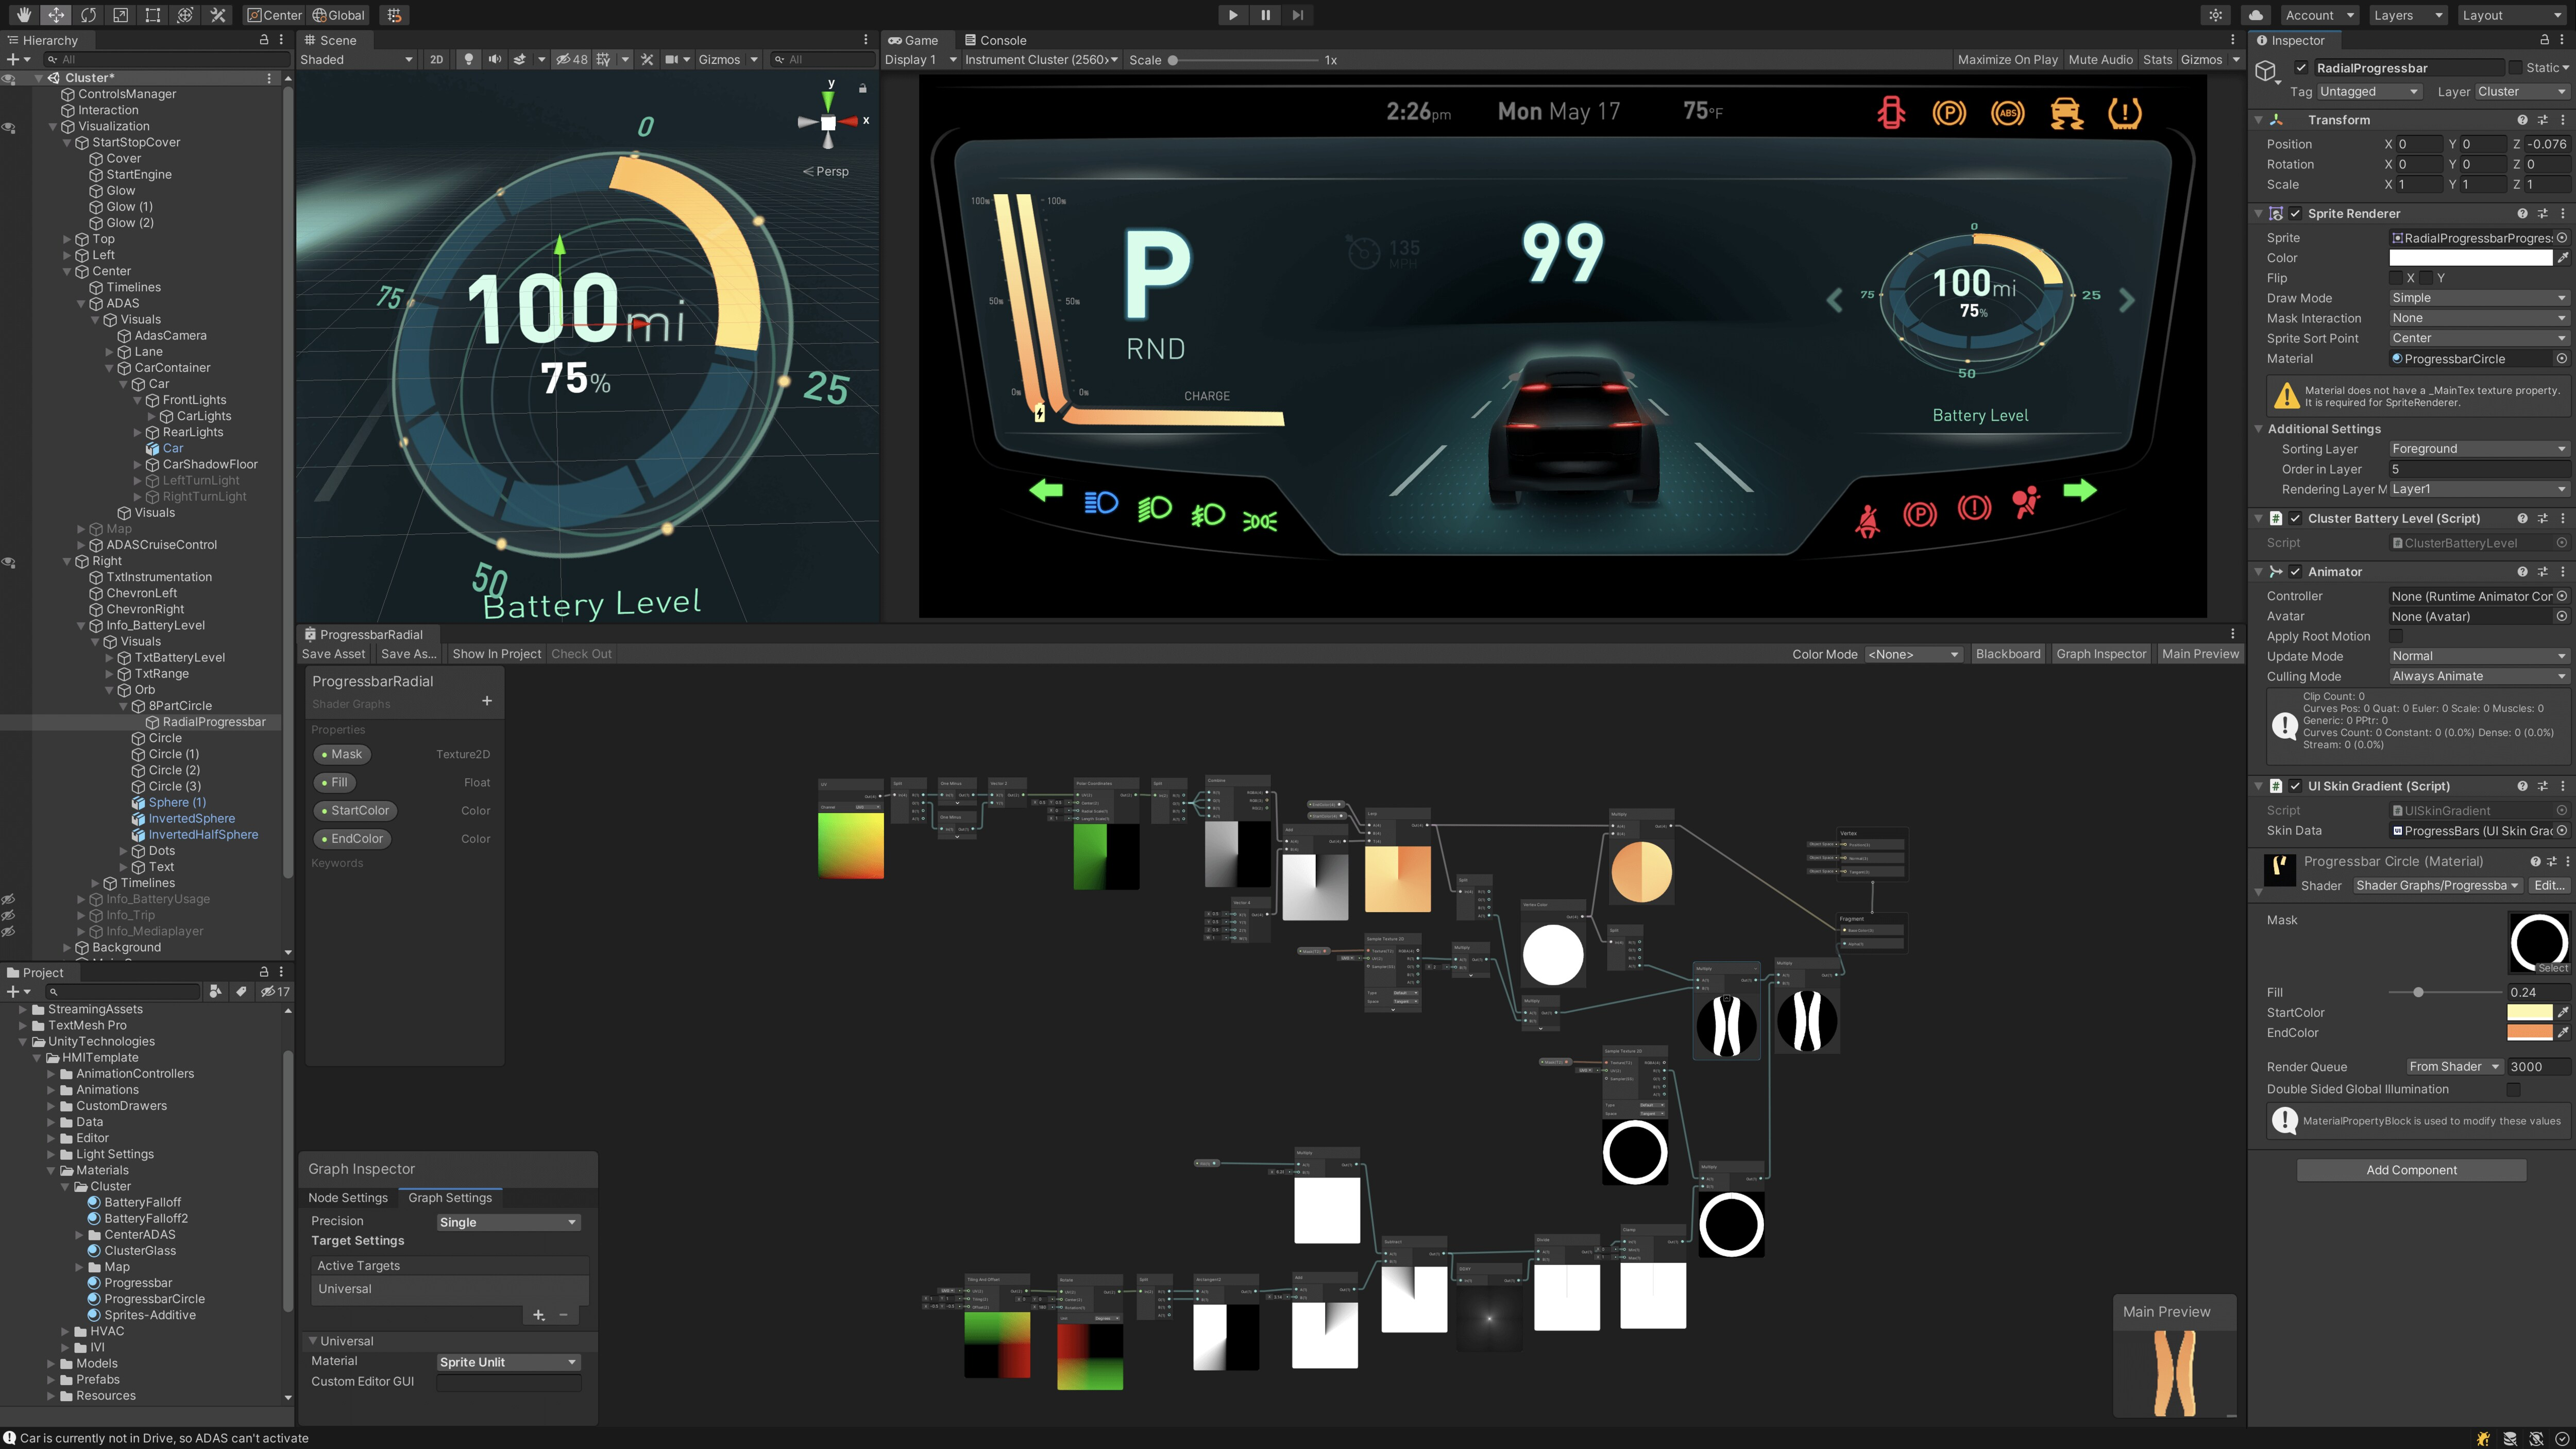 Car interface developed in unity showing speed, light levels, and heat